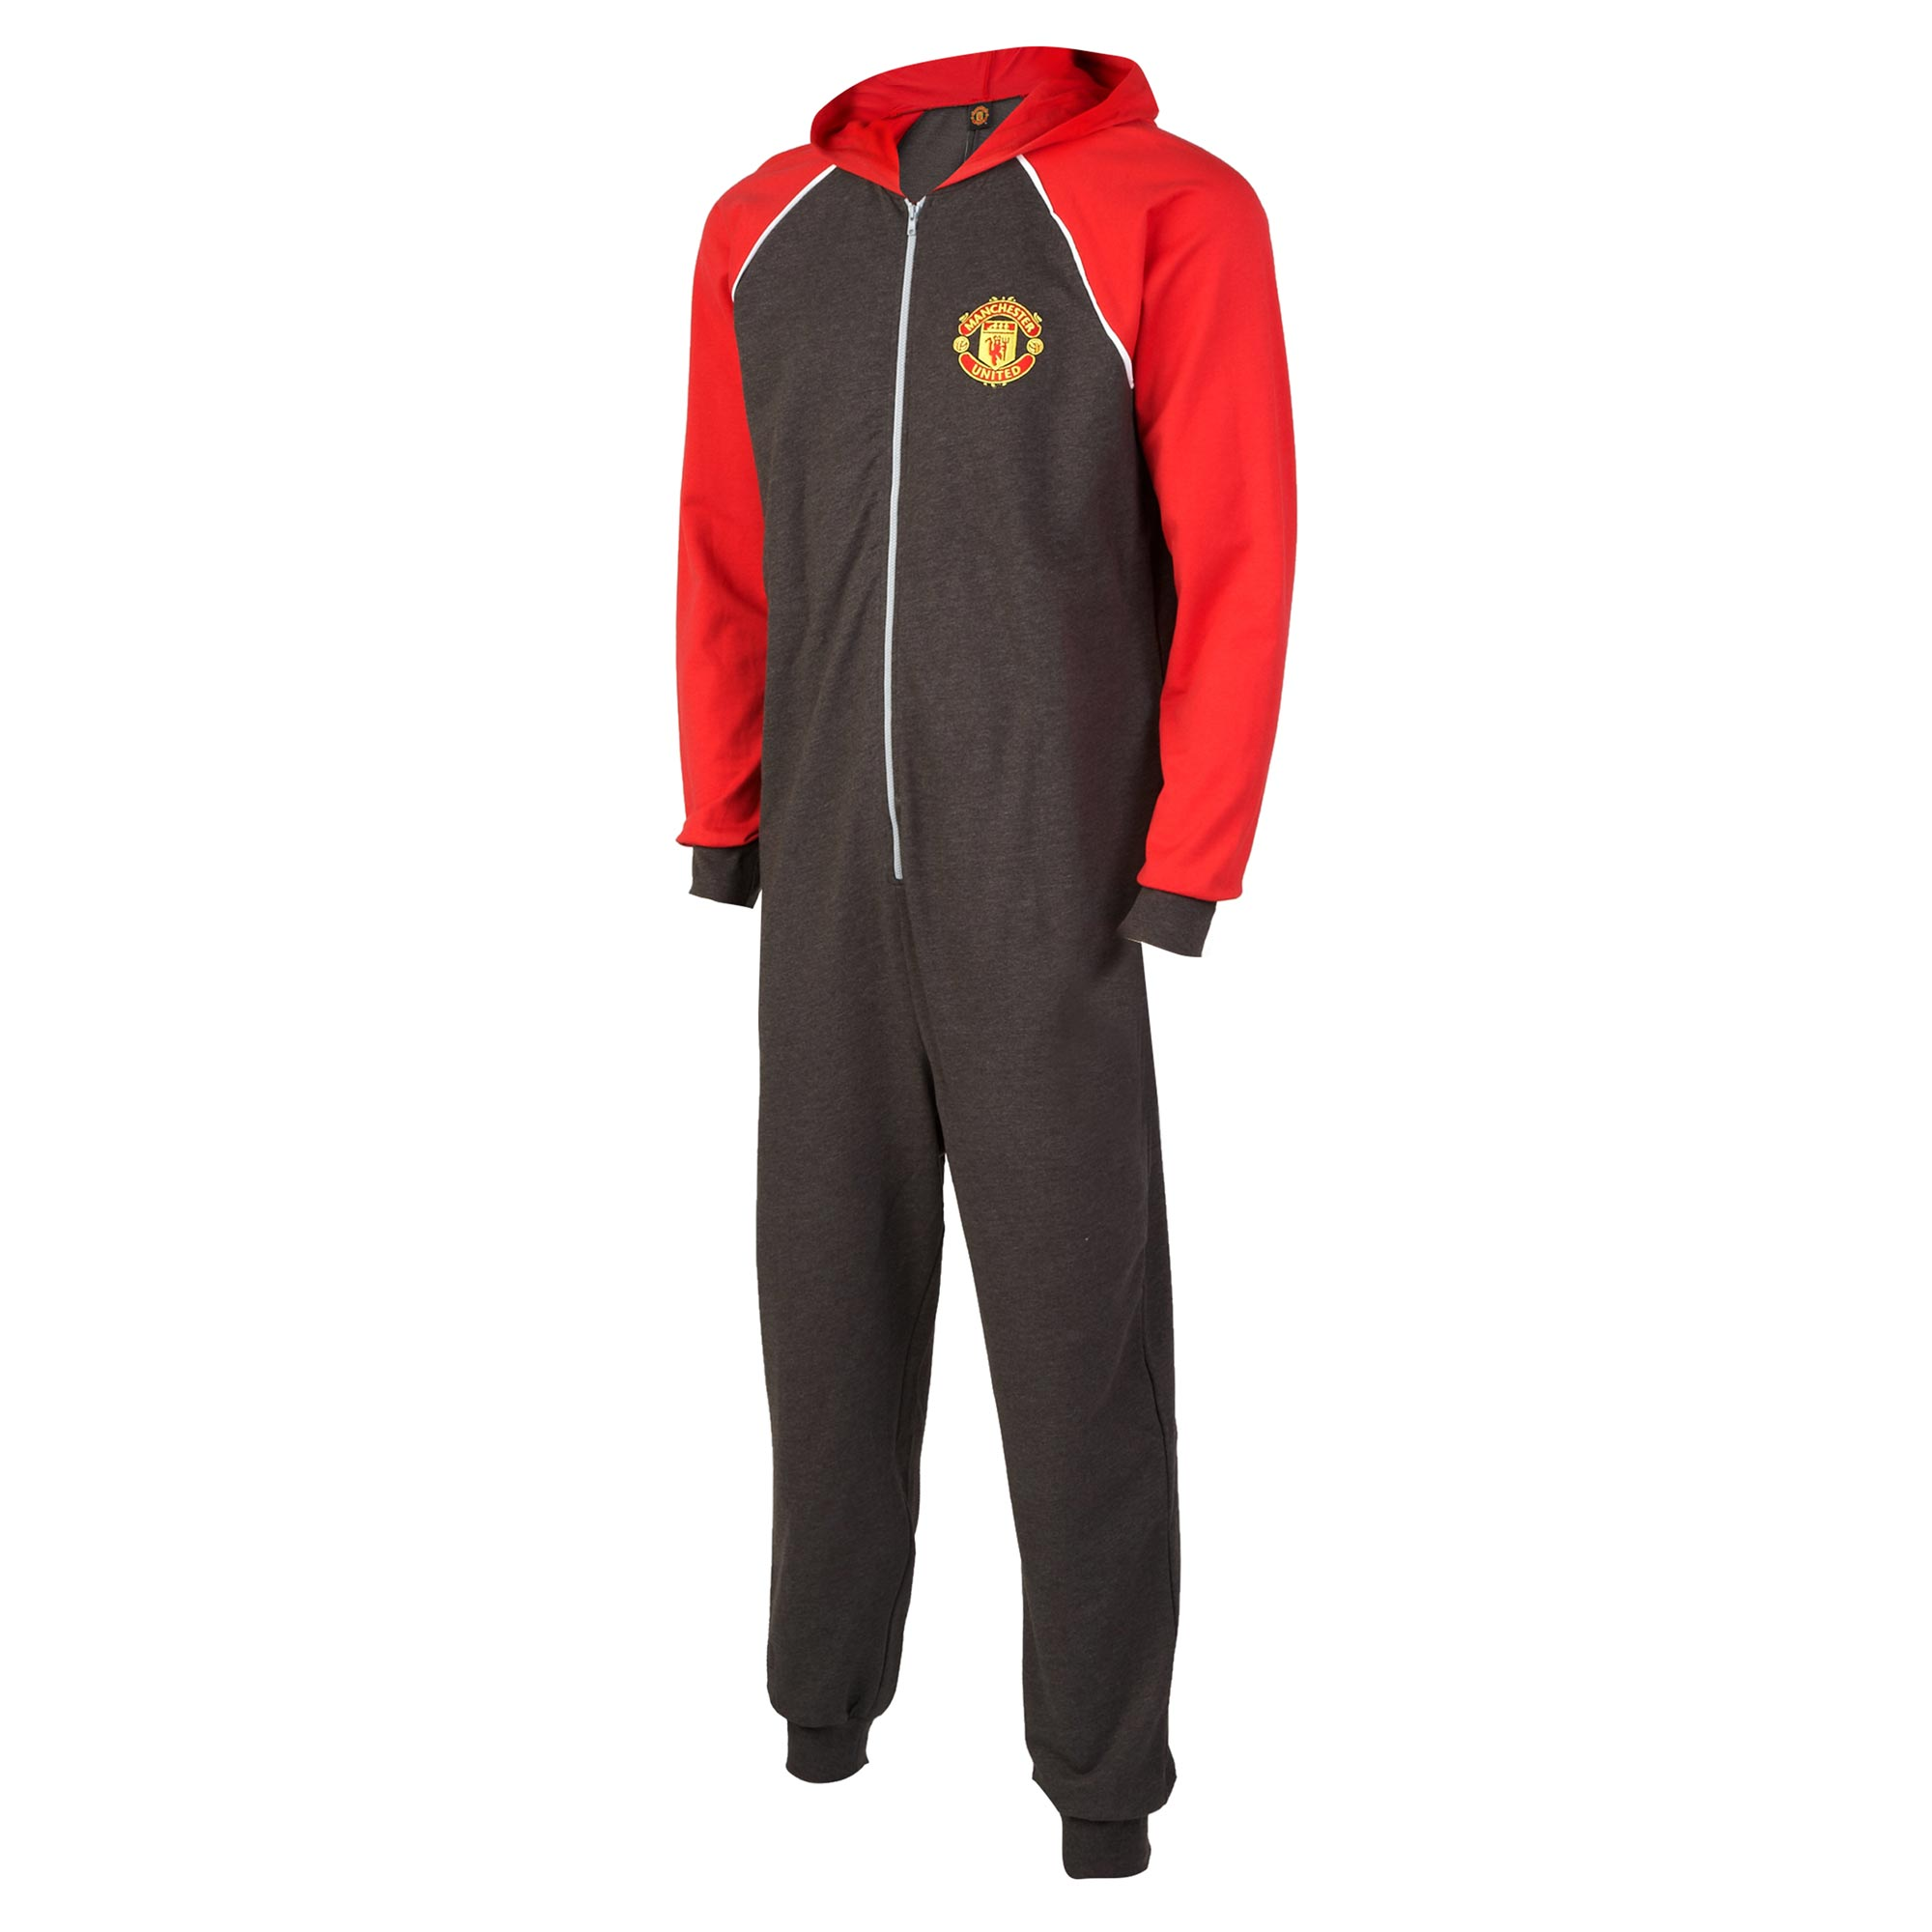 Manchester United Hooded Onesie - Charcoal Marl/Red - Mens